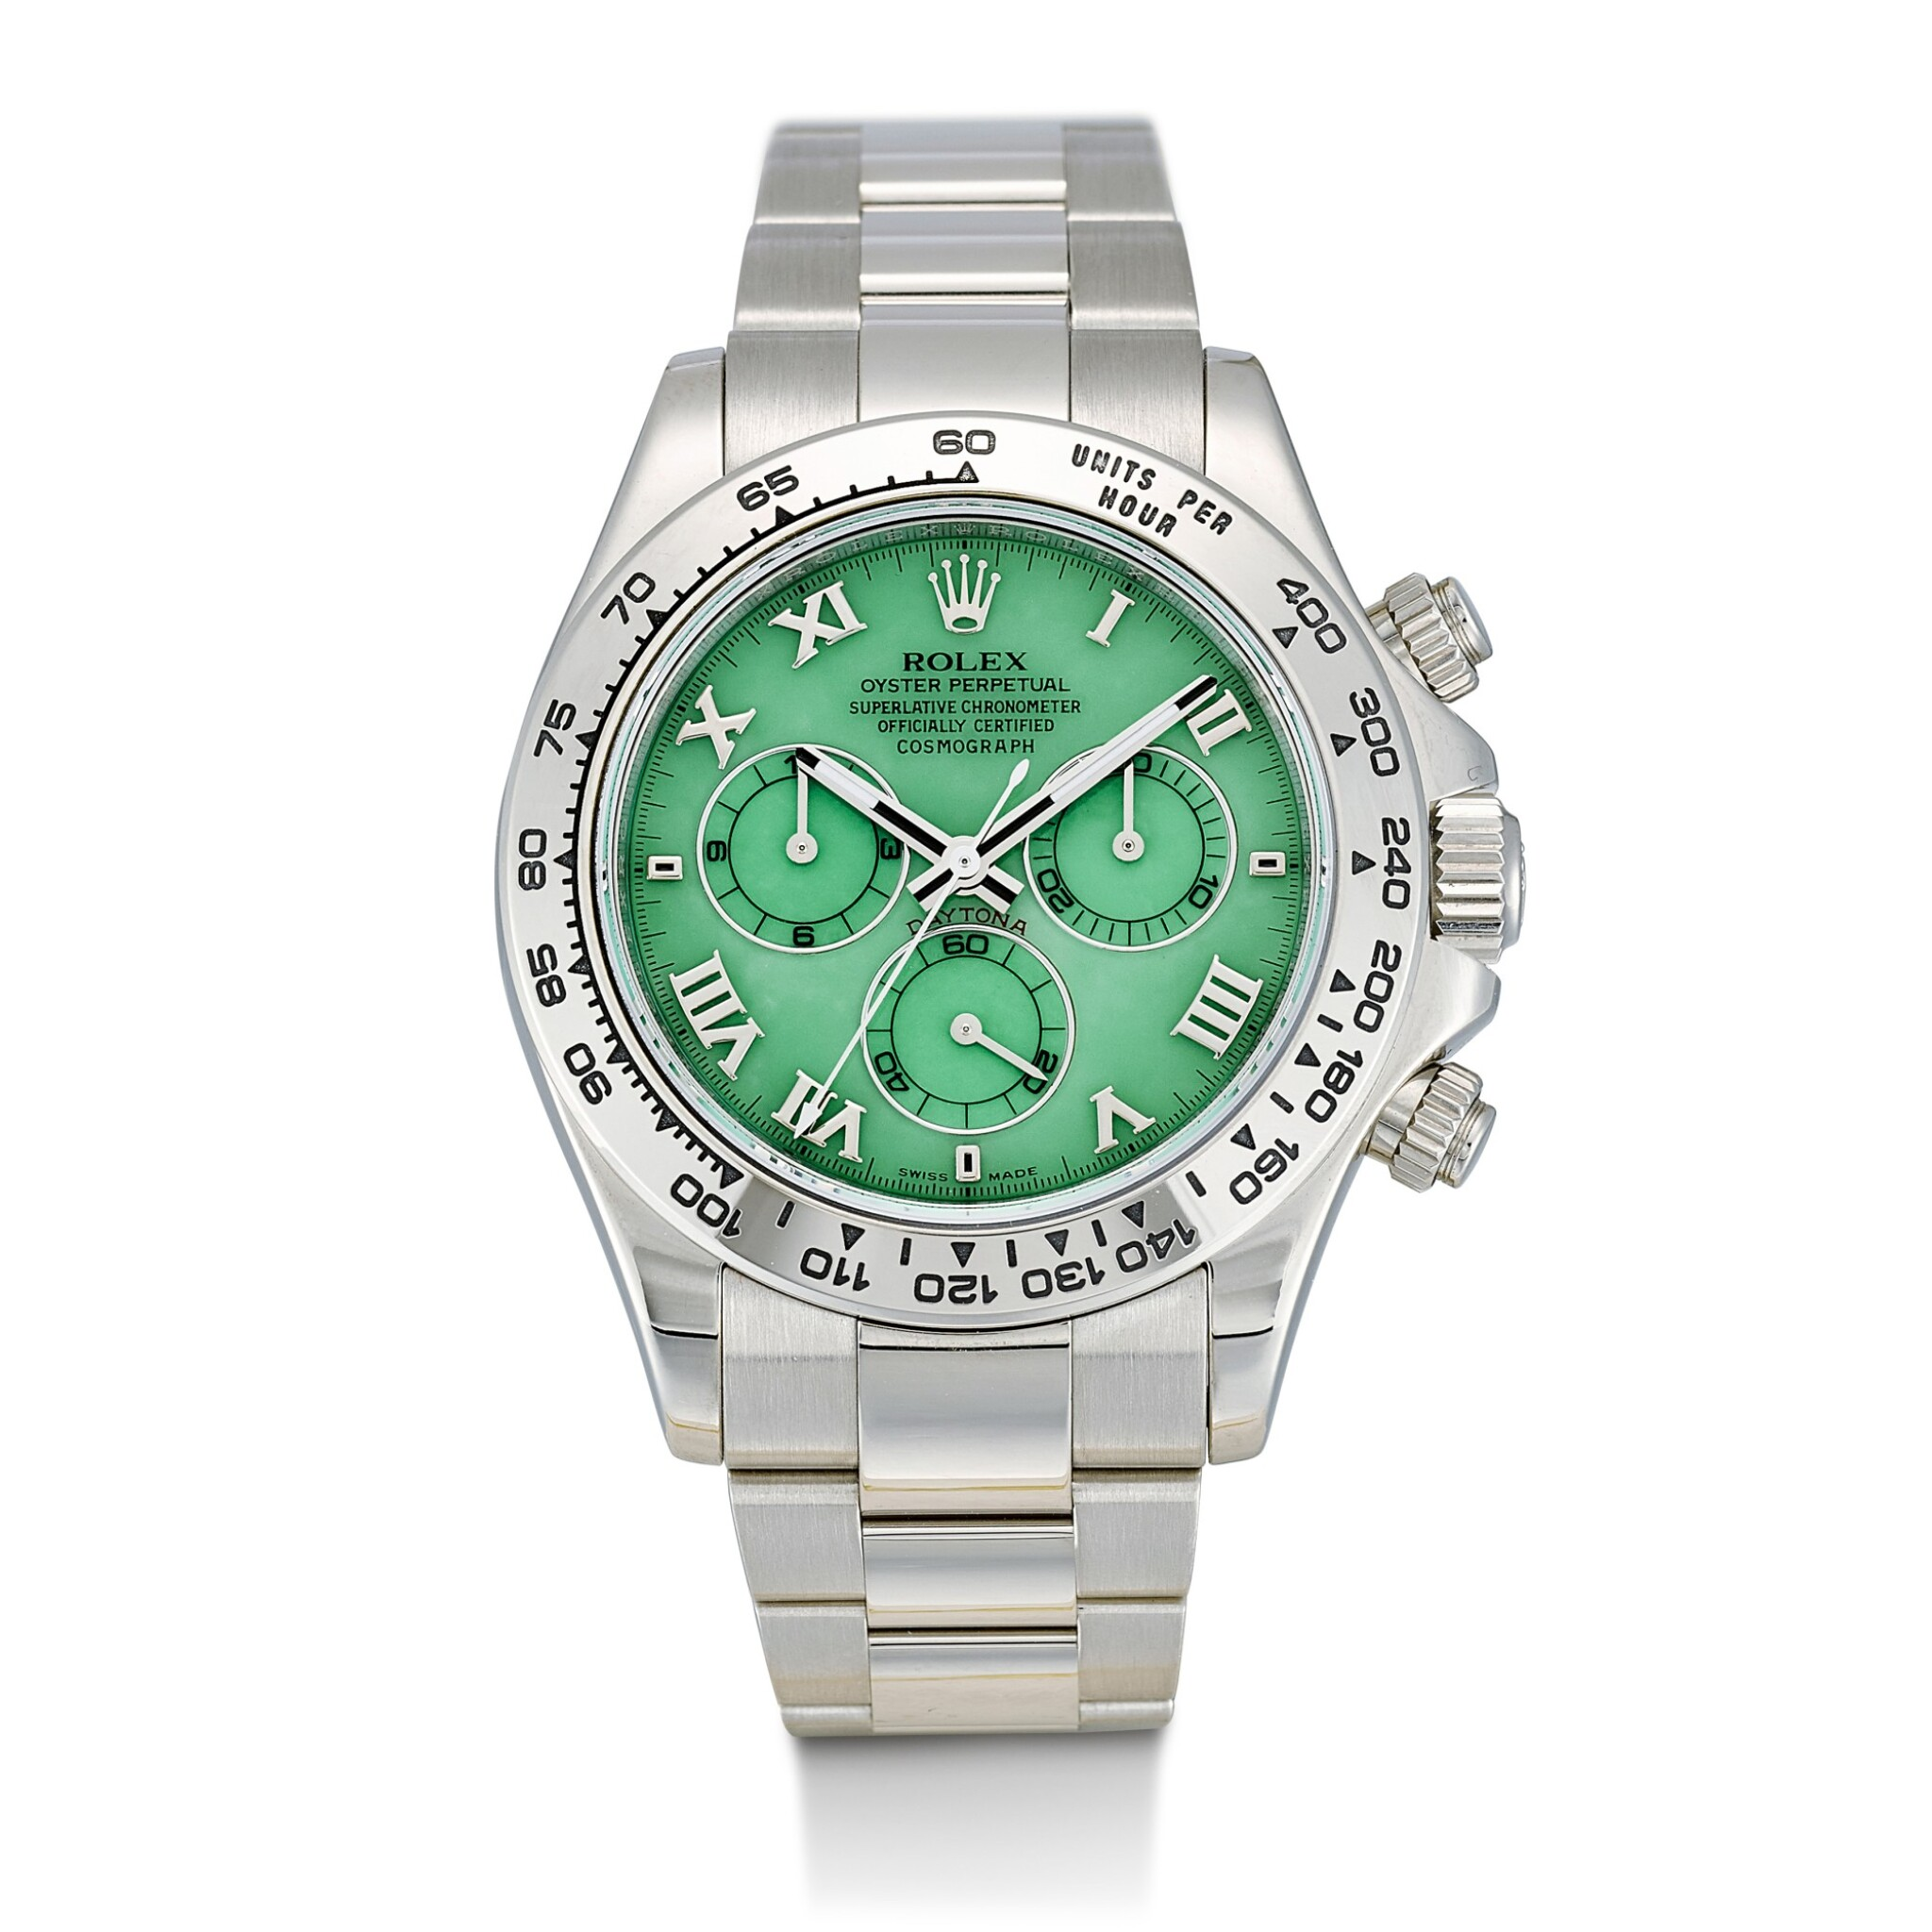 View 1 of Lot 164. ROLEX | COSMOGRAPH DAYTONA, REFERENCE 116509H, A WHITE GOLD CHRONOGRAPH WRISTWATCH WITH GREEN CHRYSOPRASE DIAL AND BRACELET, CIRCA 2015.